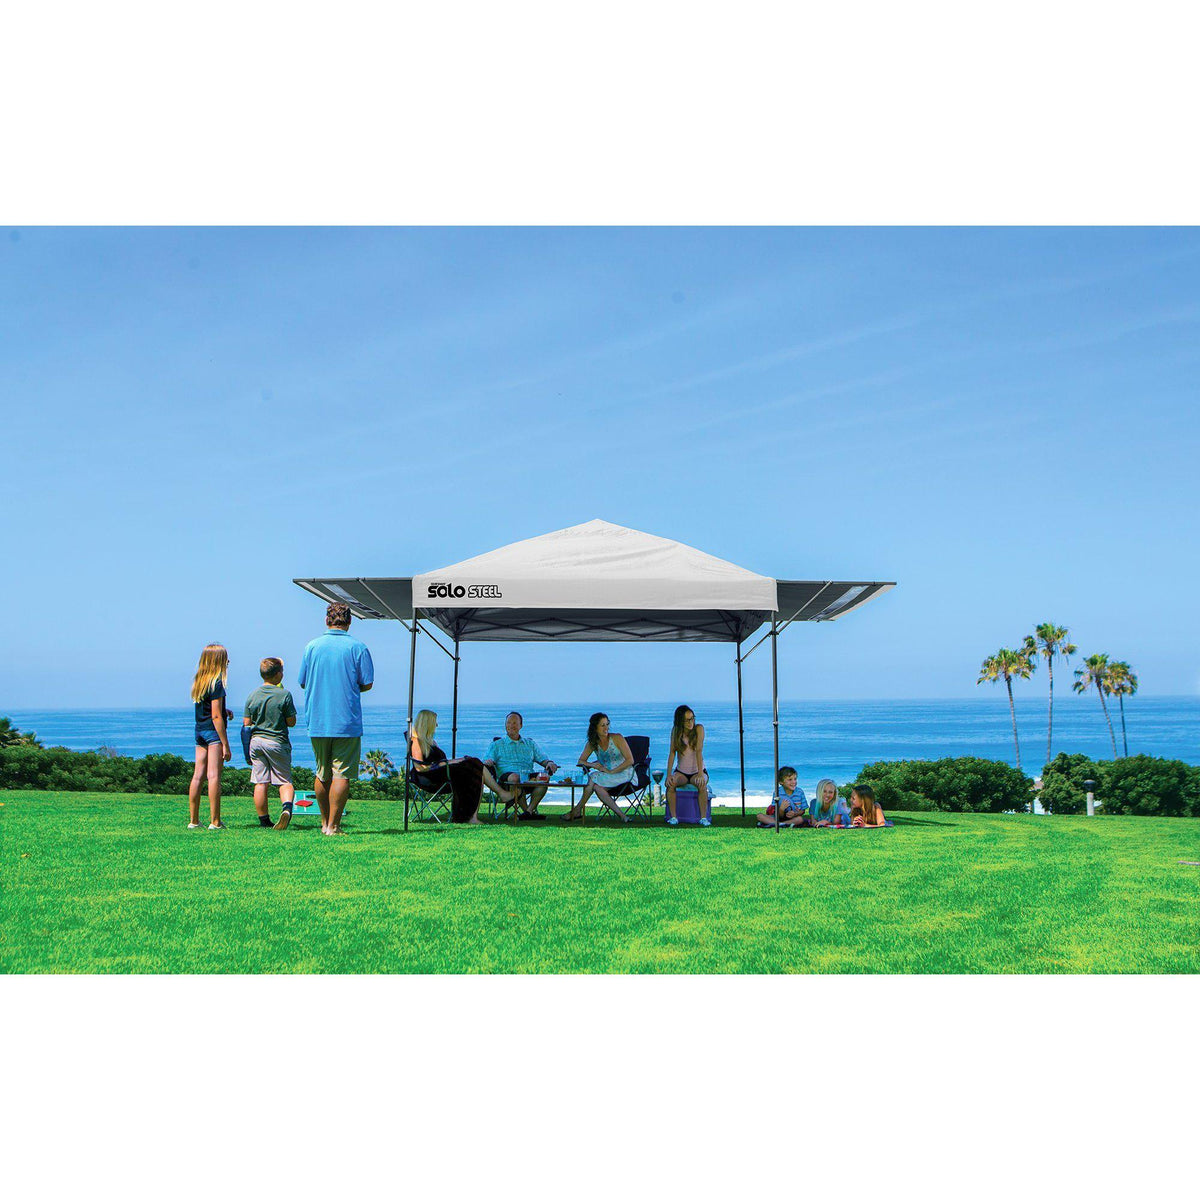 Quik Shade Solo Steel 170 10 x 17 ft. Straight Leg Canopy, White